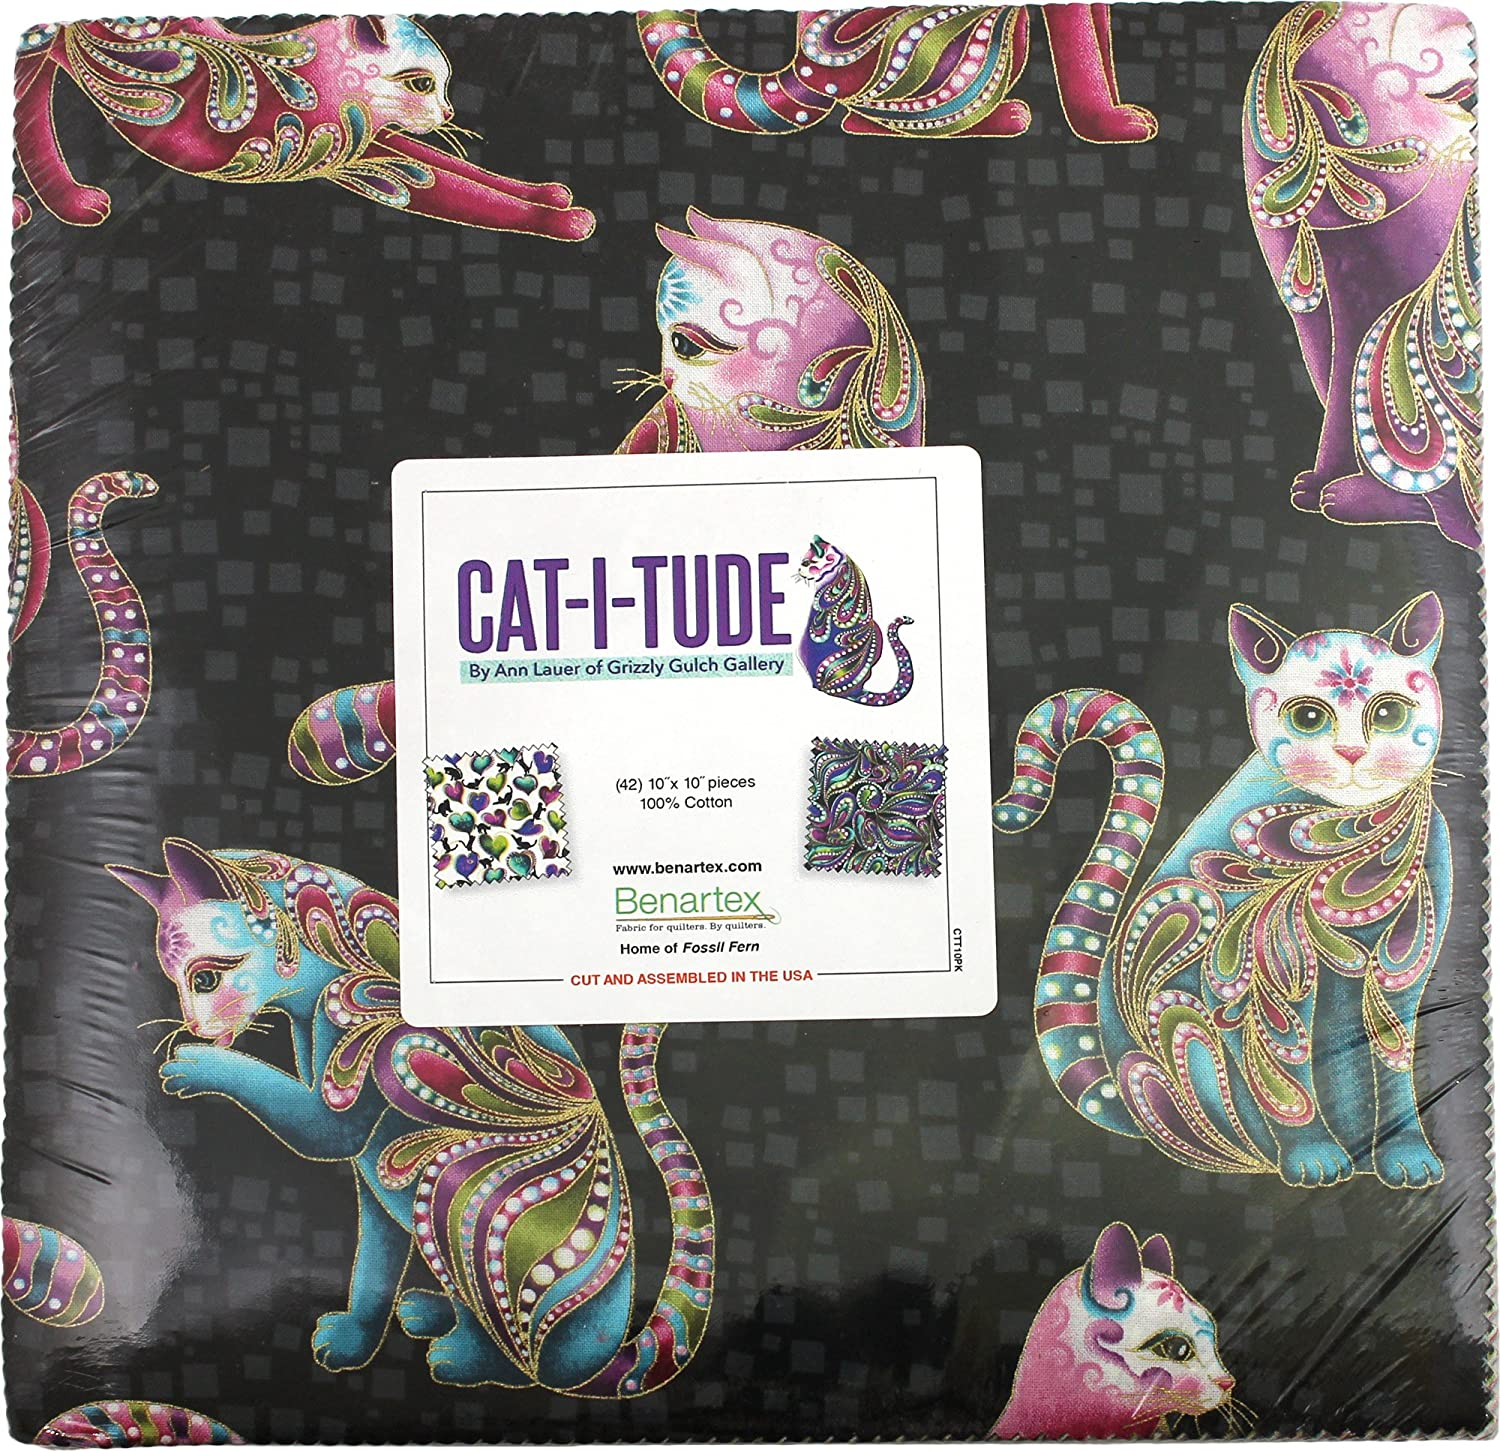 "Benartex CAT-I-TUDE by Ann Lauer, 10"" X 10"" Cotton Fabric for Sewing, Pack of 42 10-Inches Quilting Fabric Squares, Layer Cake, Assorted"